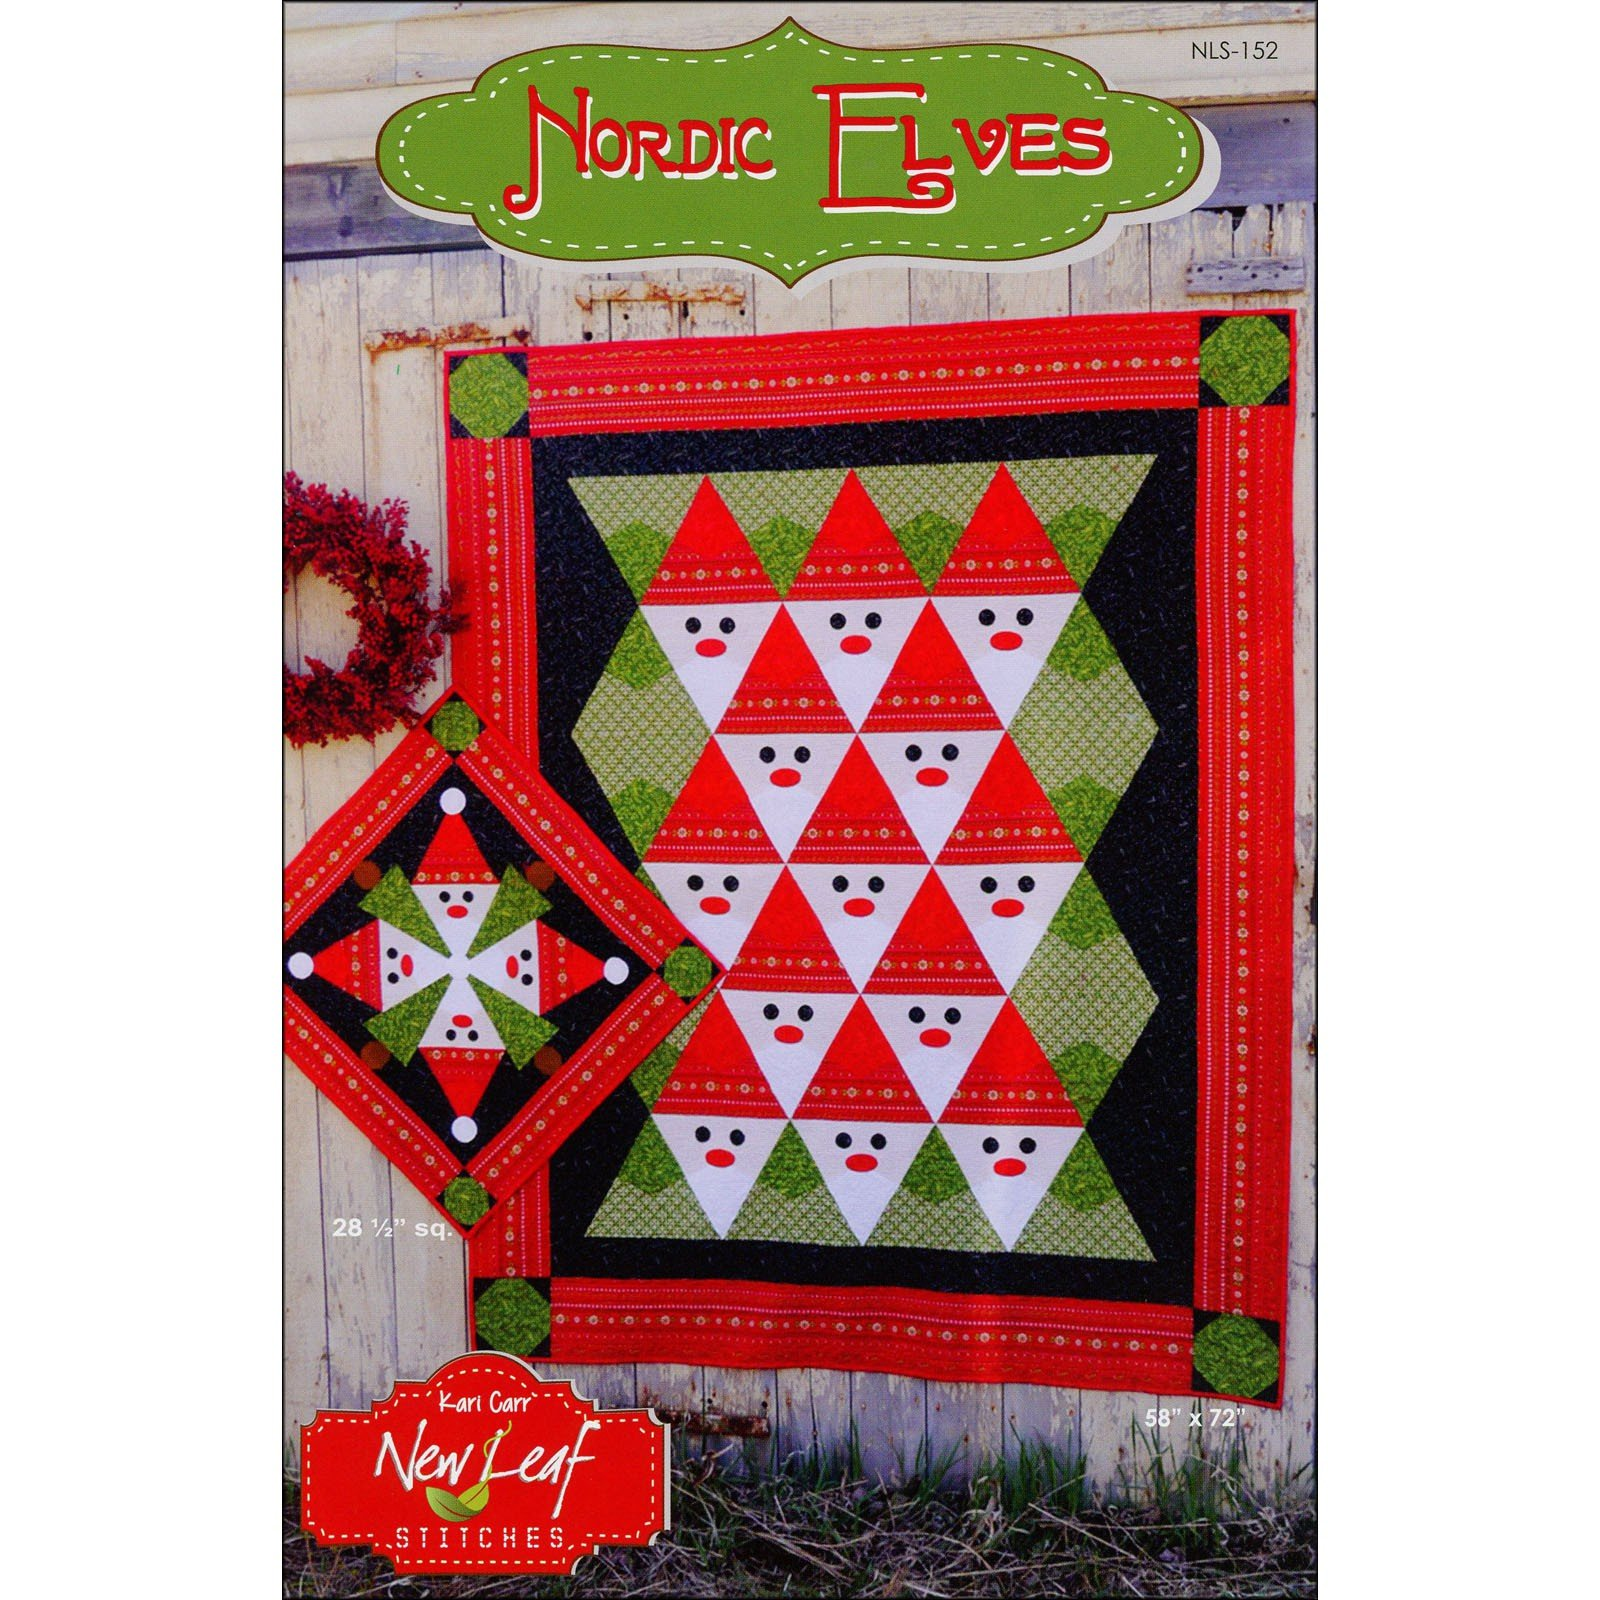 Nordic Elves<br/>New Leaf Stitches